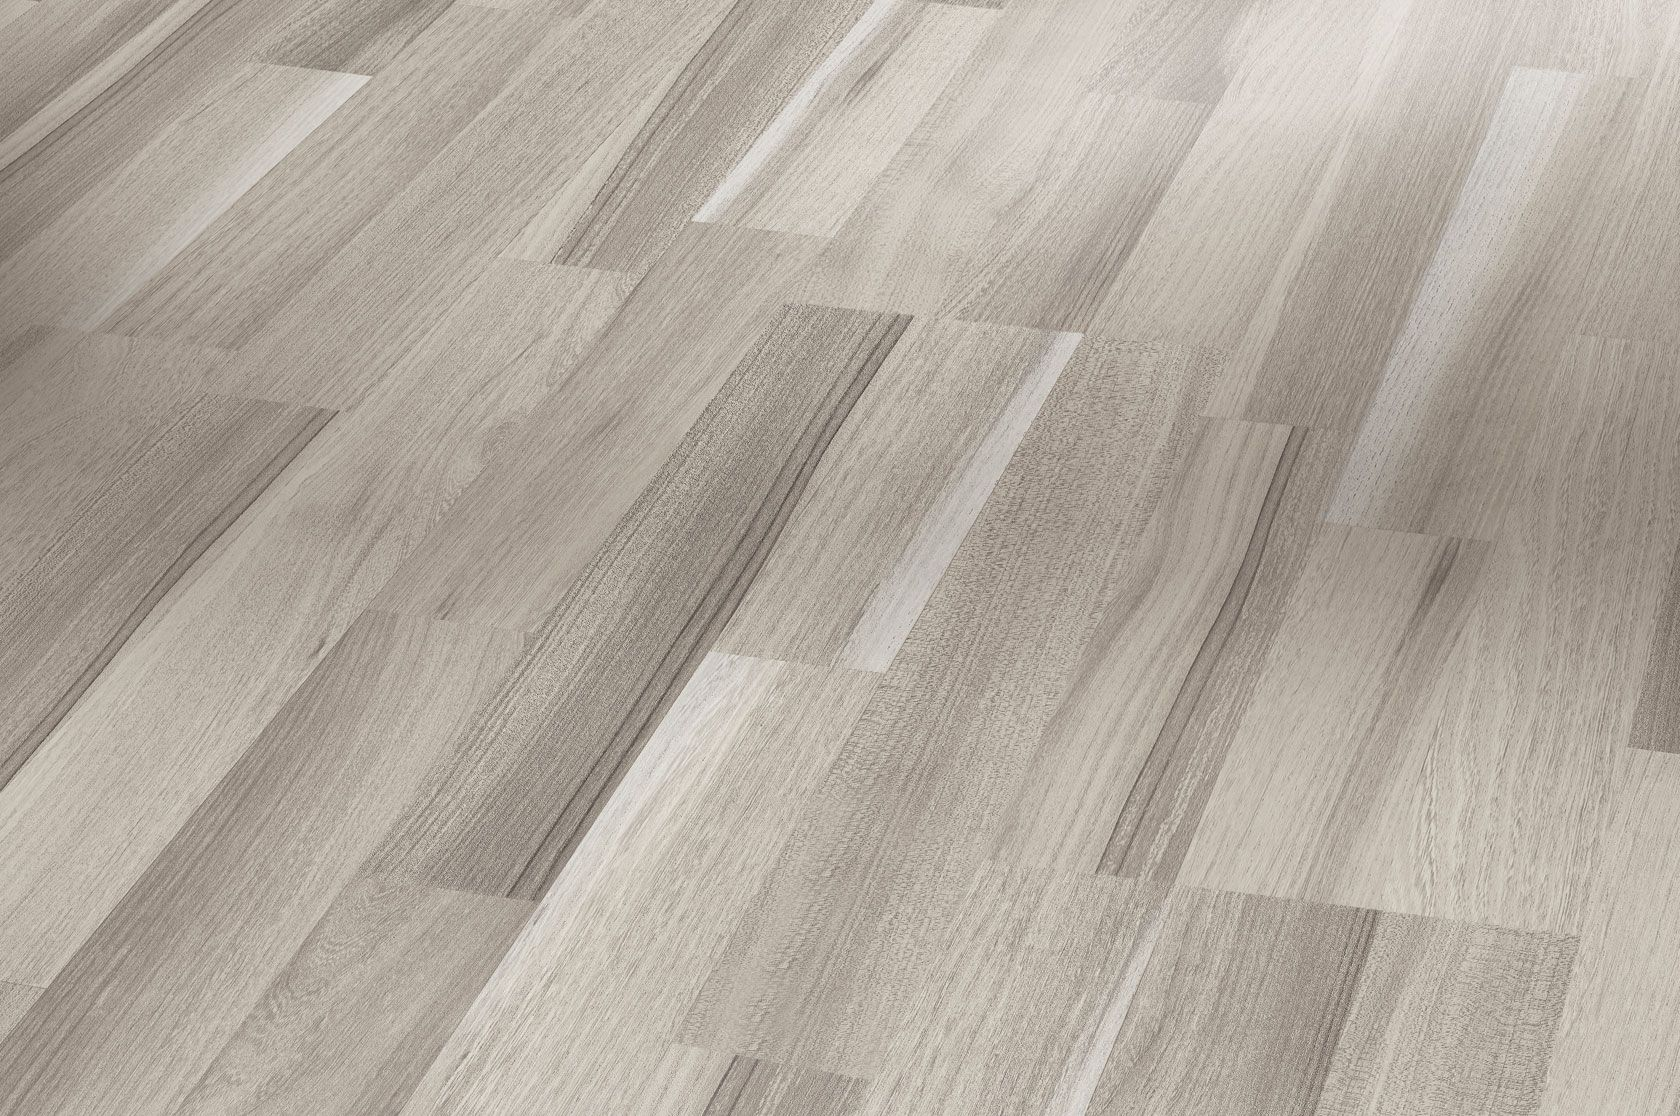 Laminate Flooring Basic 200 Acacia grey block 3plank matt